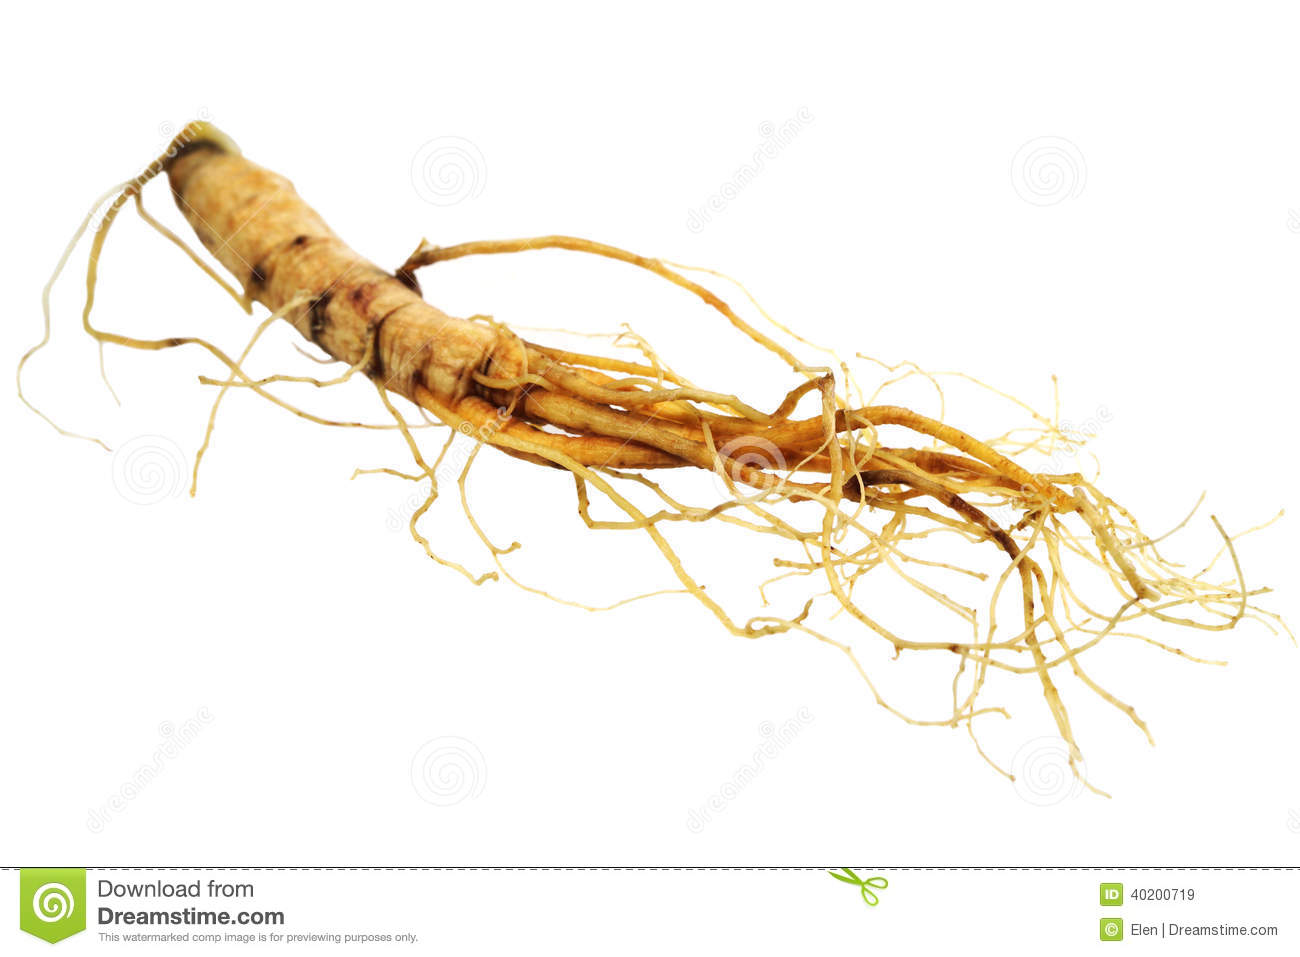 The root of ginseng